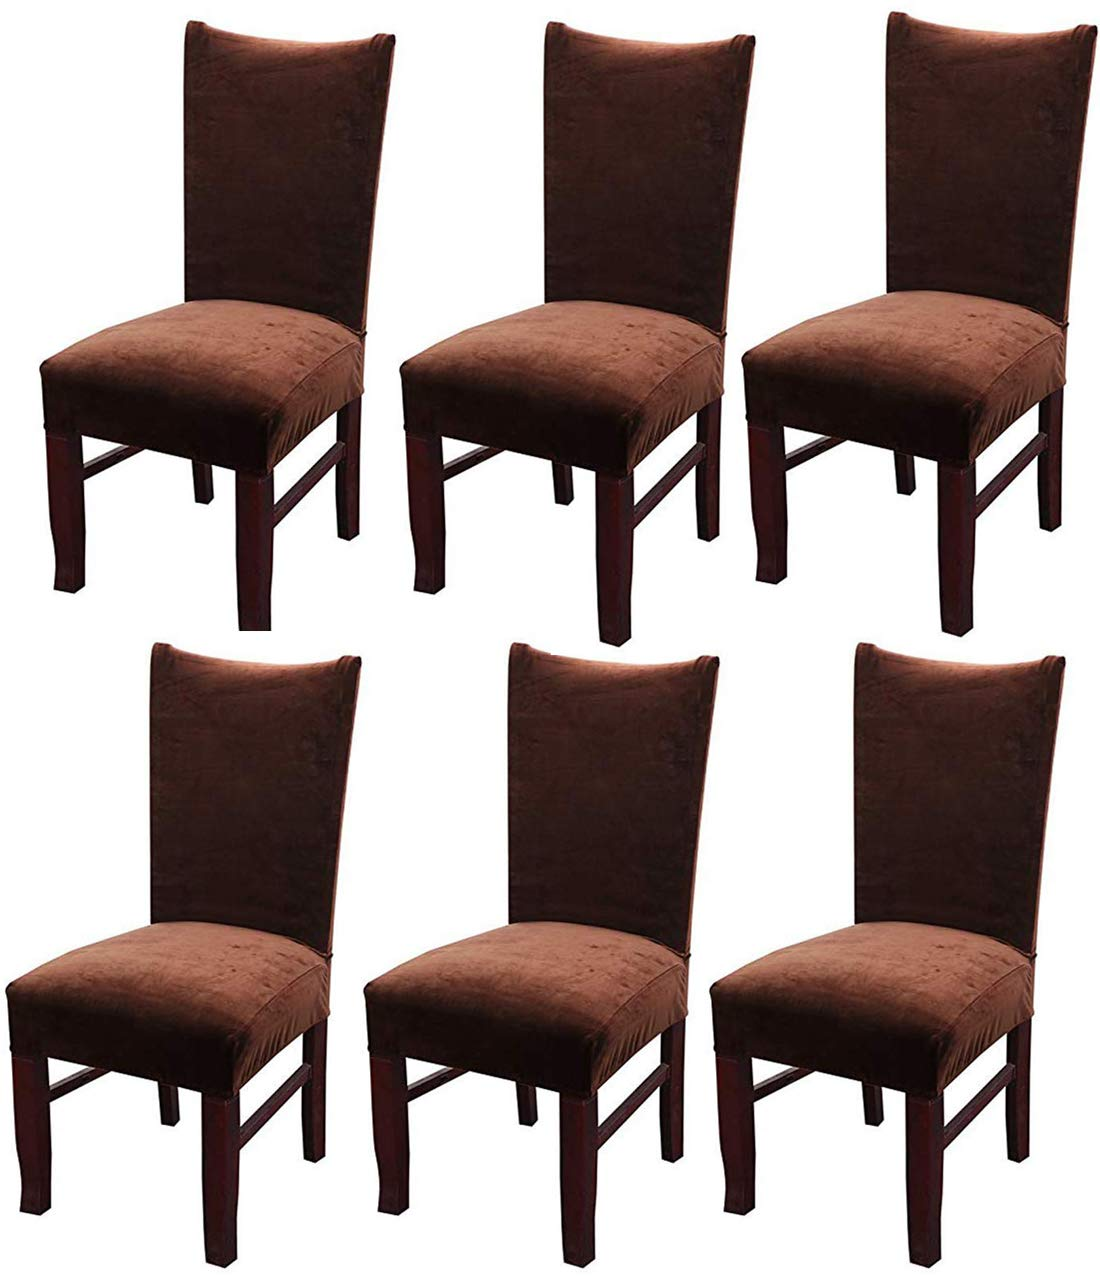 Wine Red MOCAA Velvet Stretch Dining Room Chair Covers Thick Soft Removable Dining Chair Slipcovers Set of 6 M008